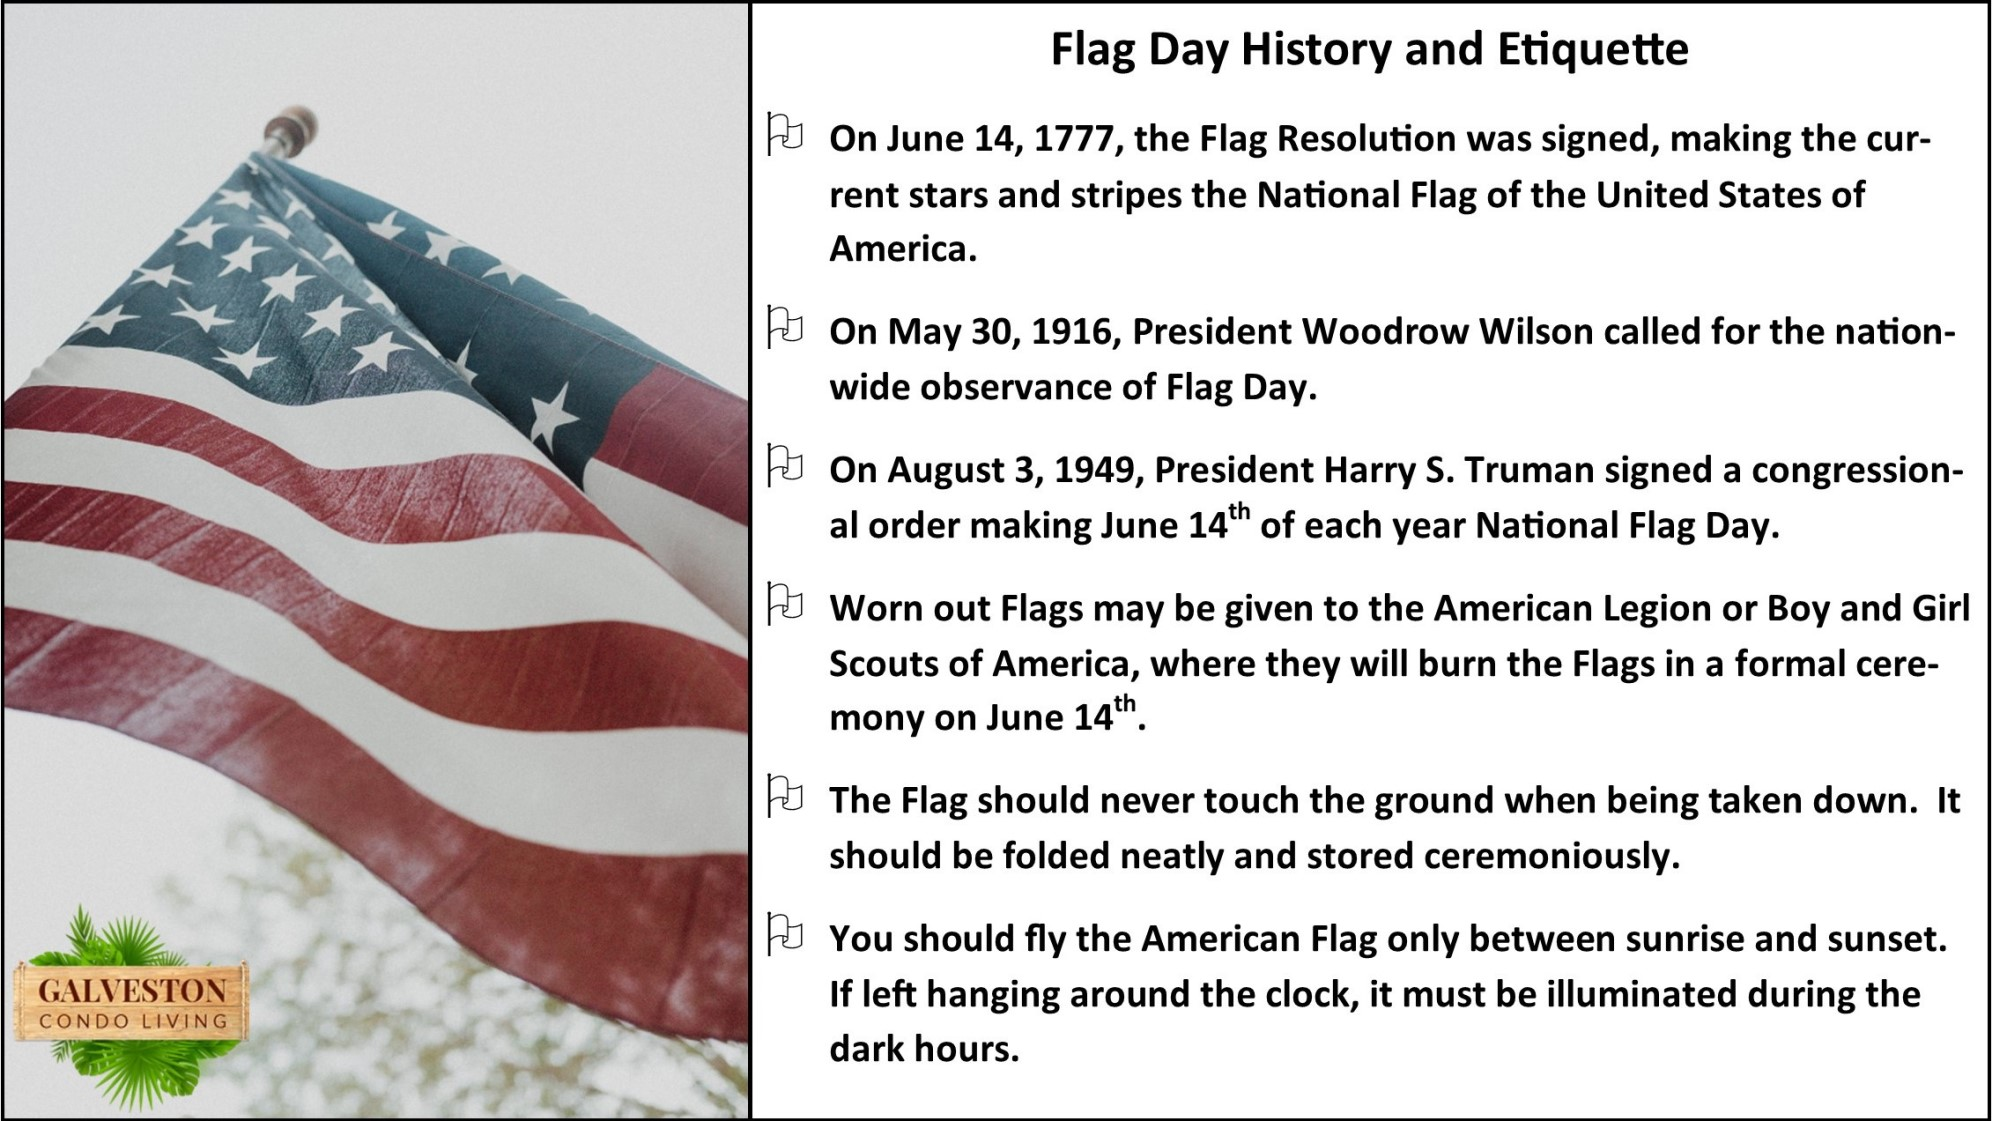 Flag Day history